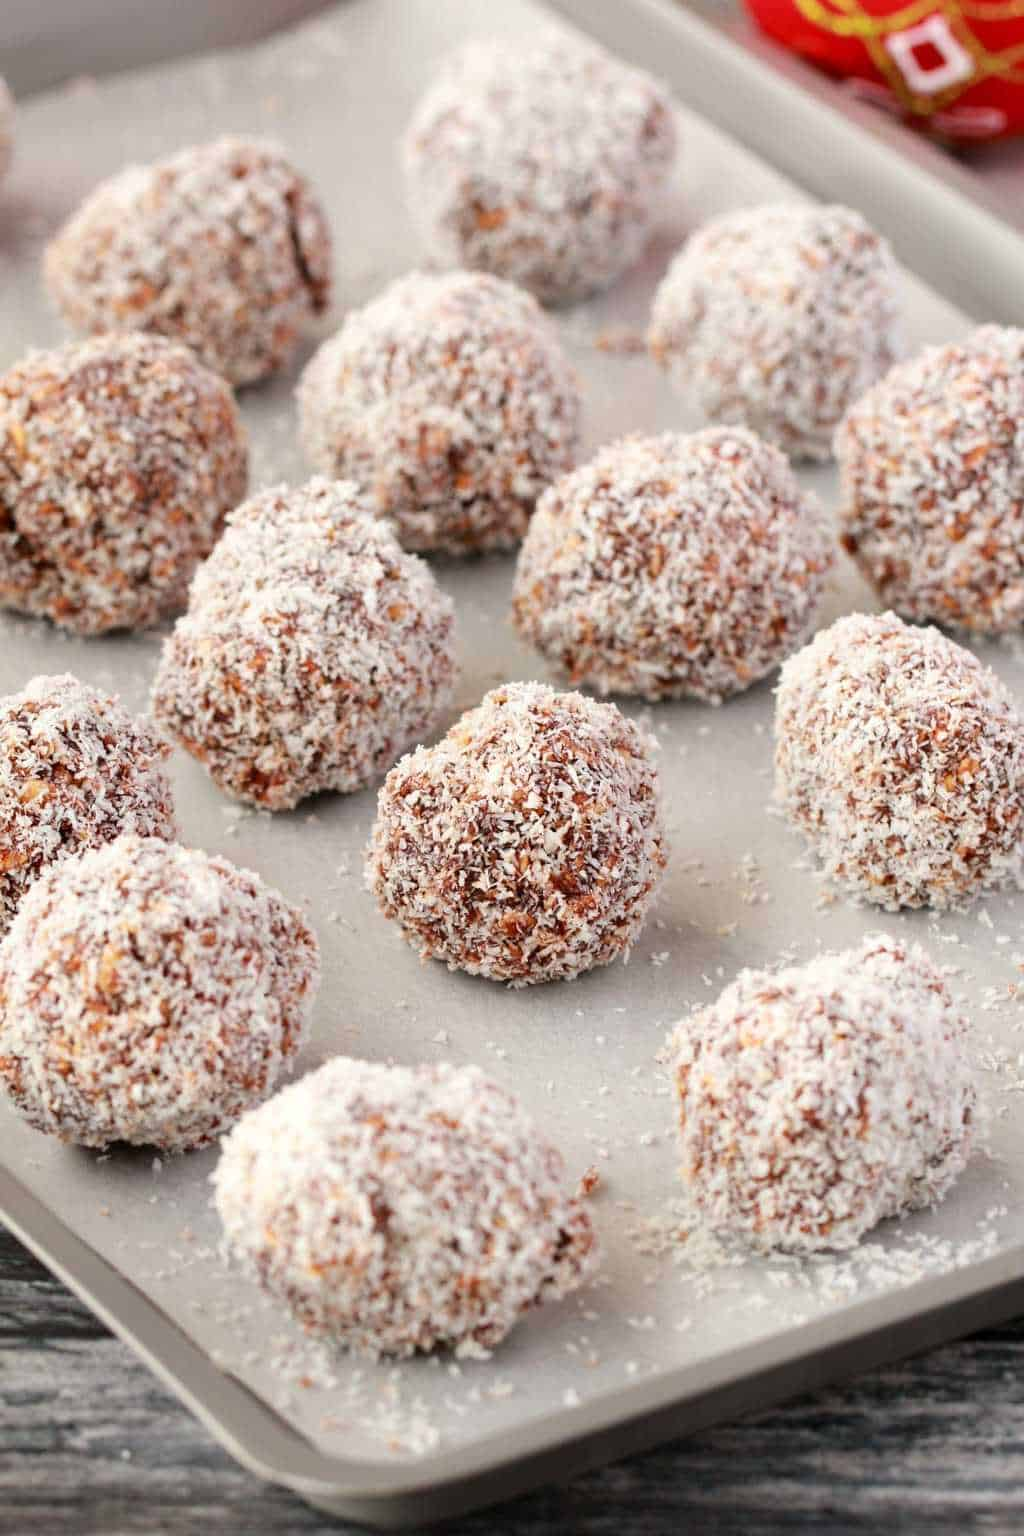 Chocolate snowballs on a parchment lined baking tray.